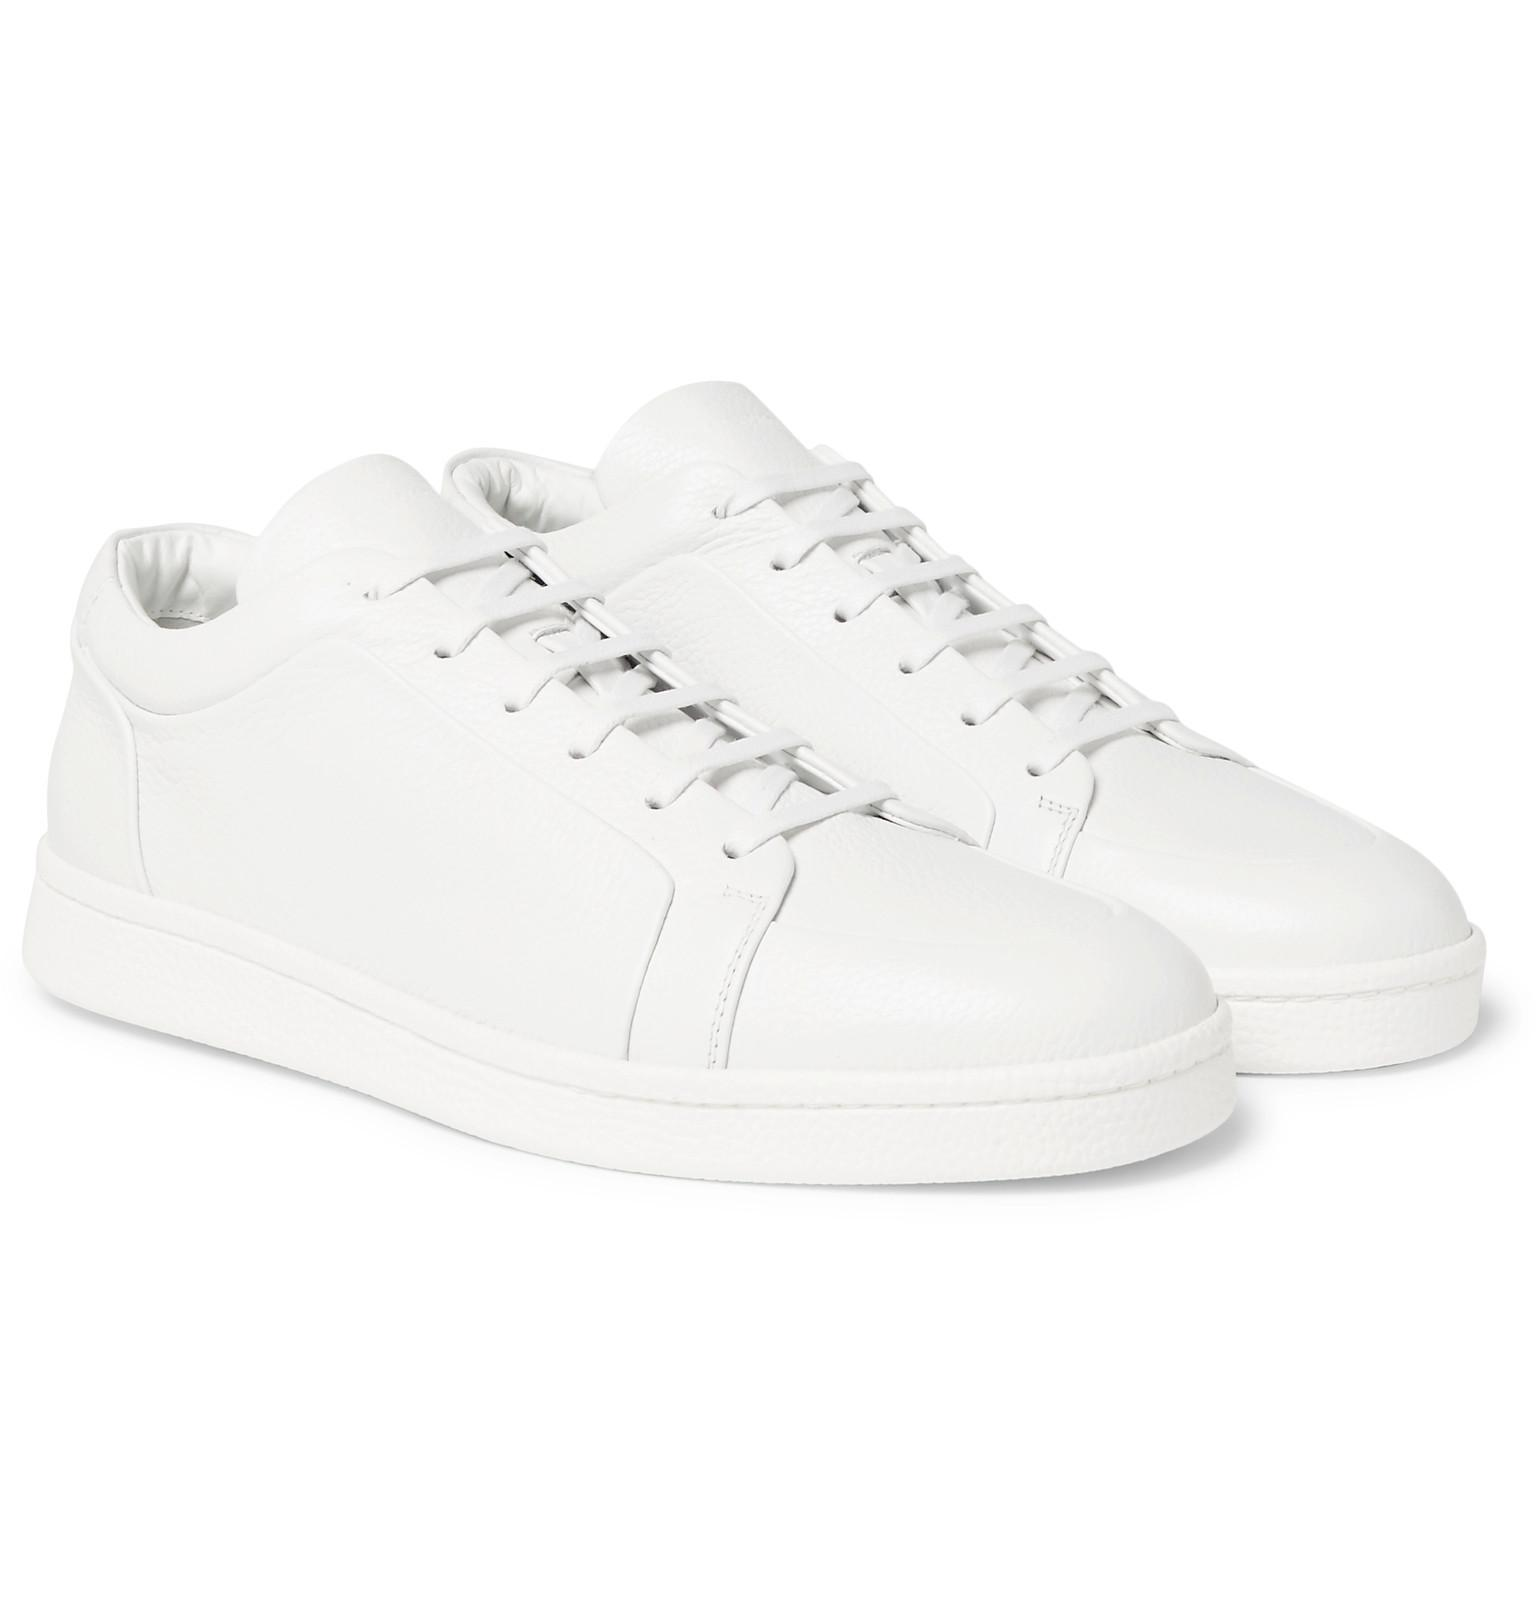 promo code 0d94d 2c1f2 Balenciaga Urban Low Textured-leather Sneakers in White for Men - Lyst